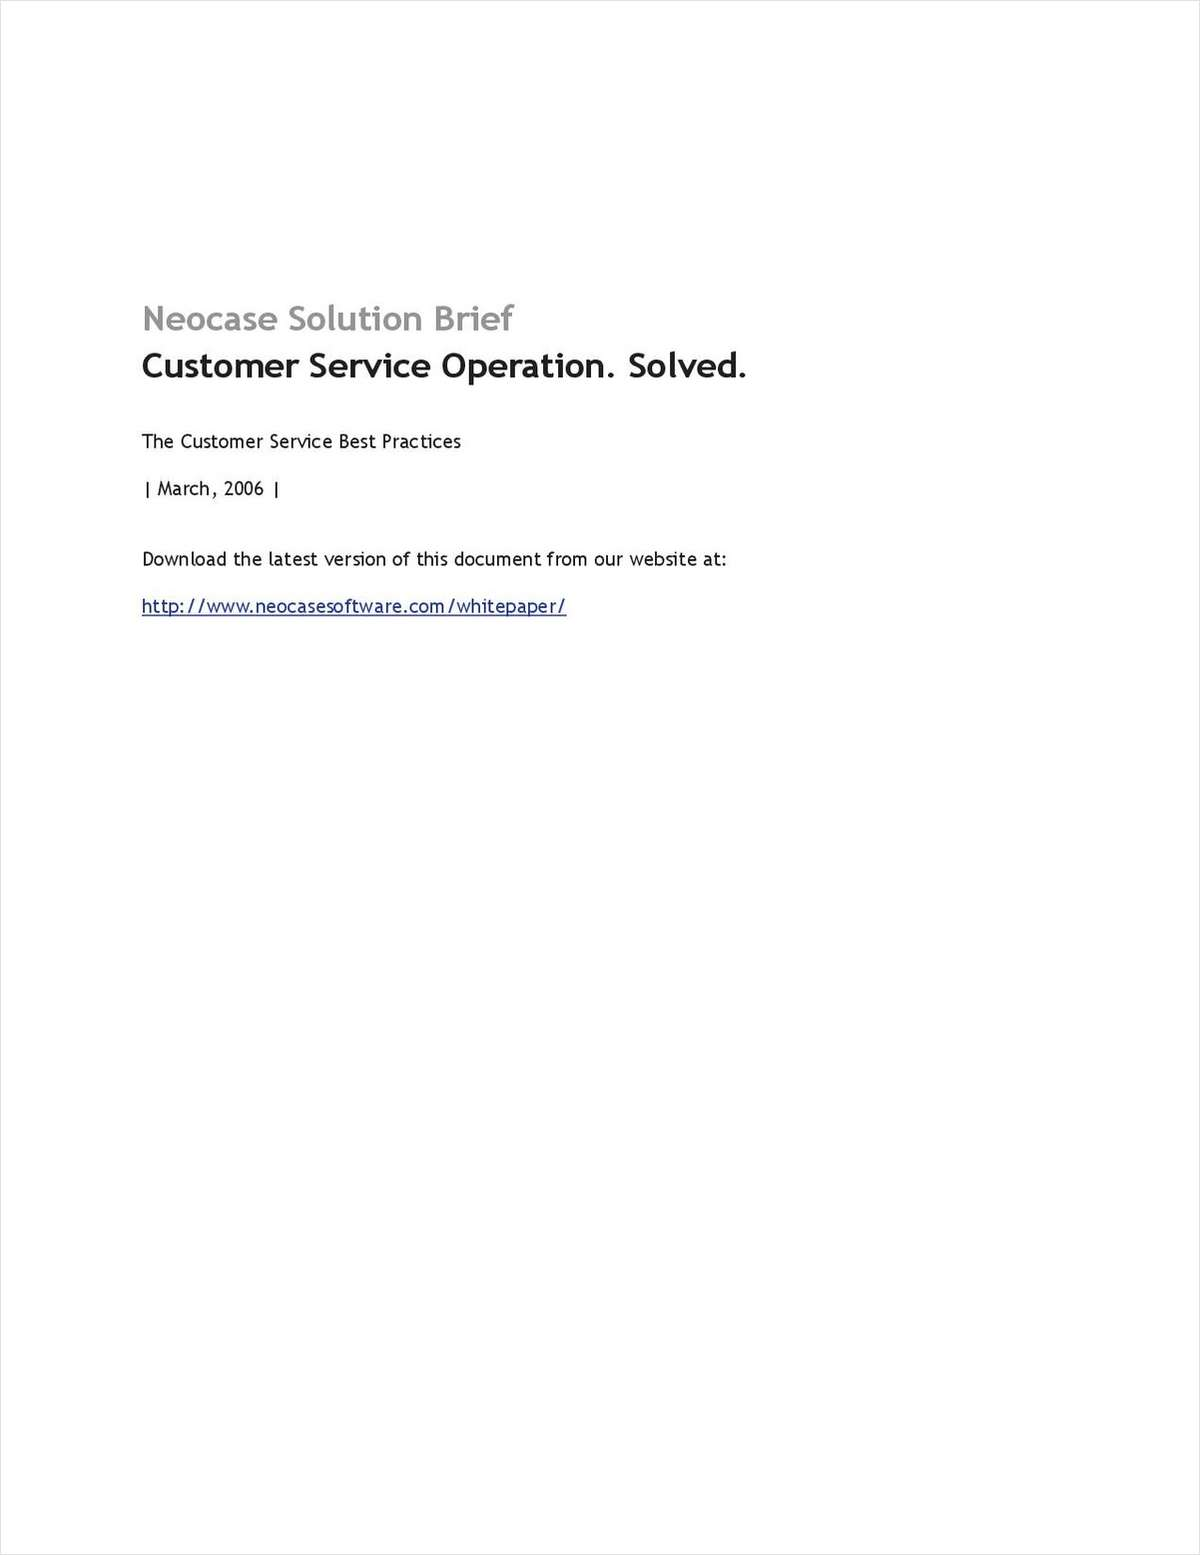 Neocase's Customer Service Best Practices